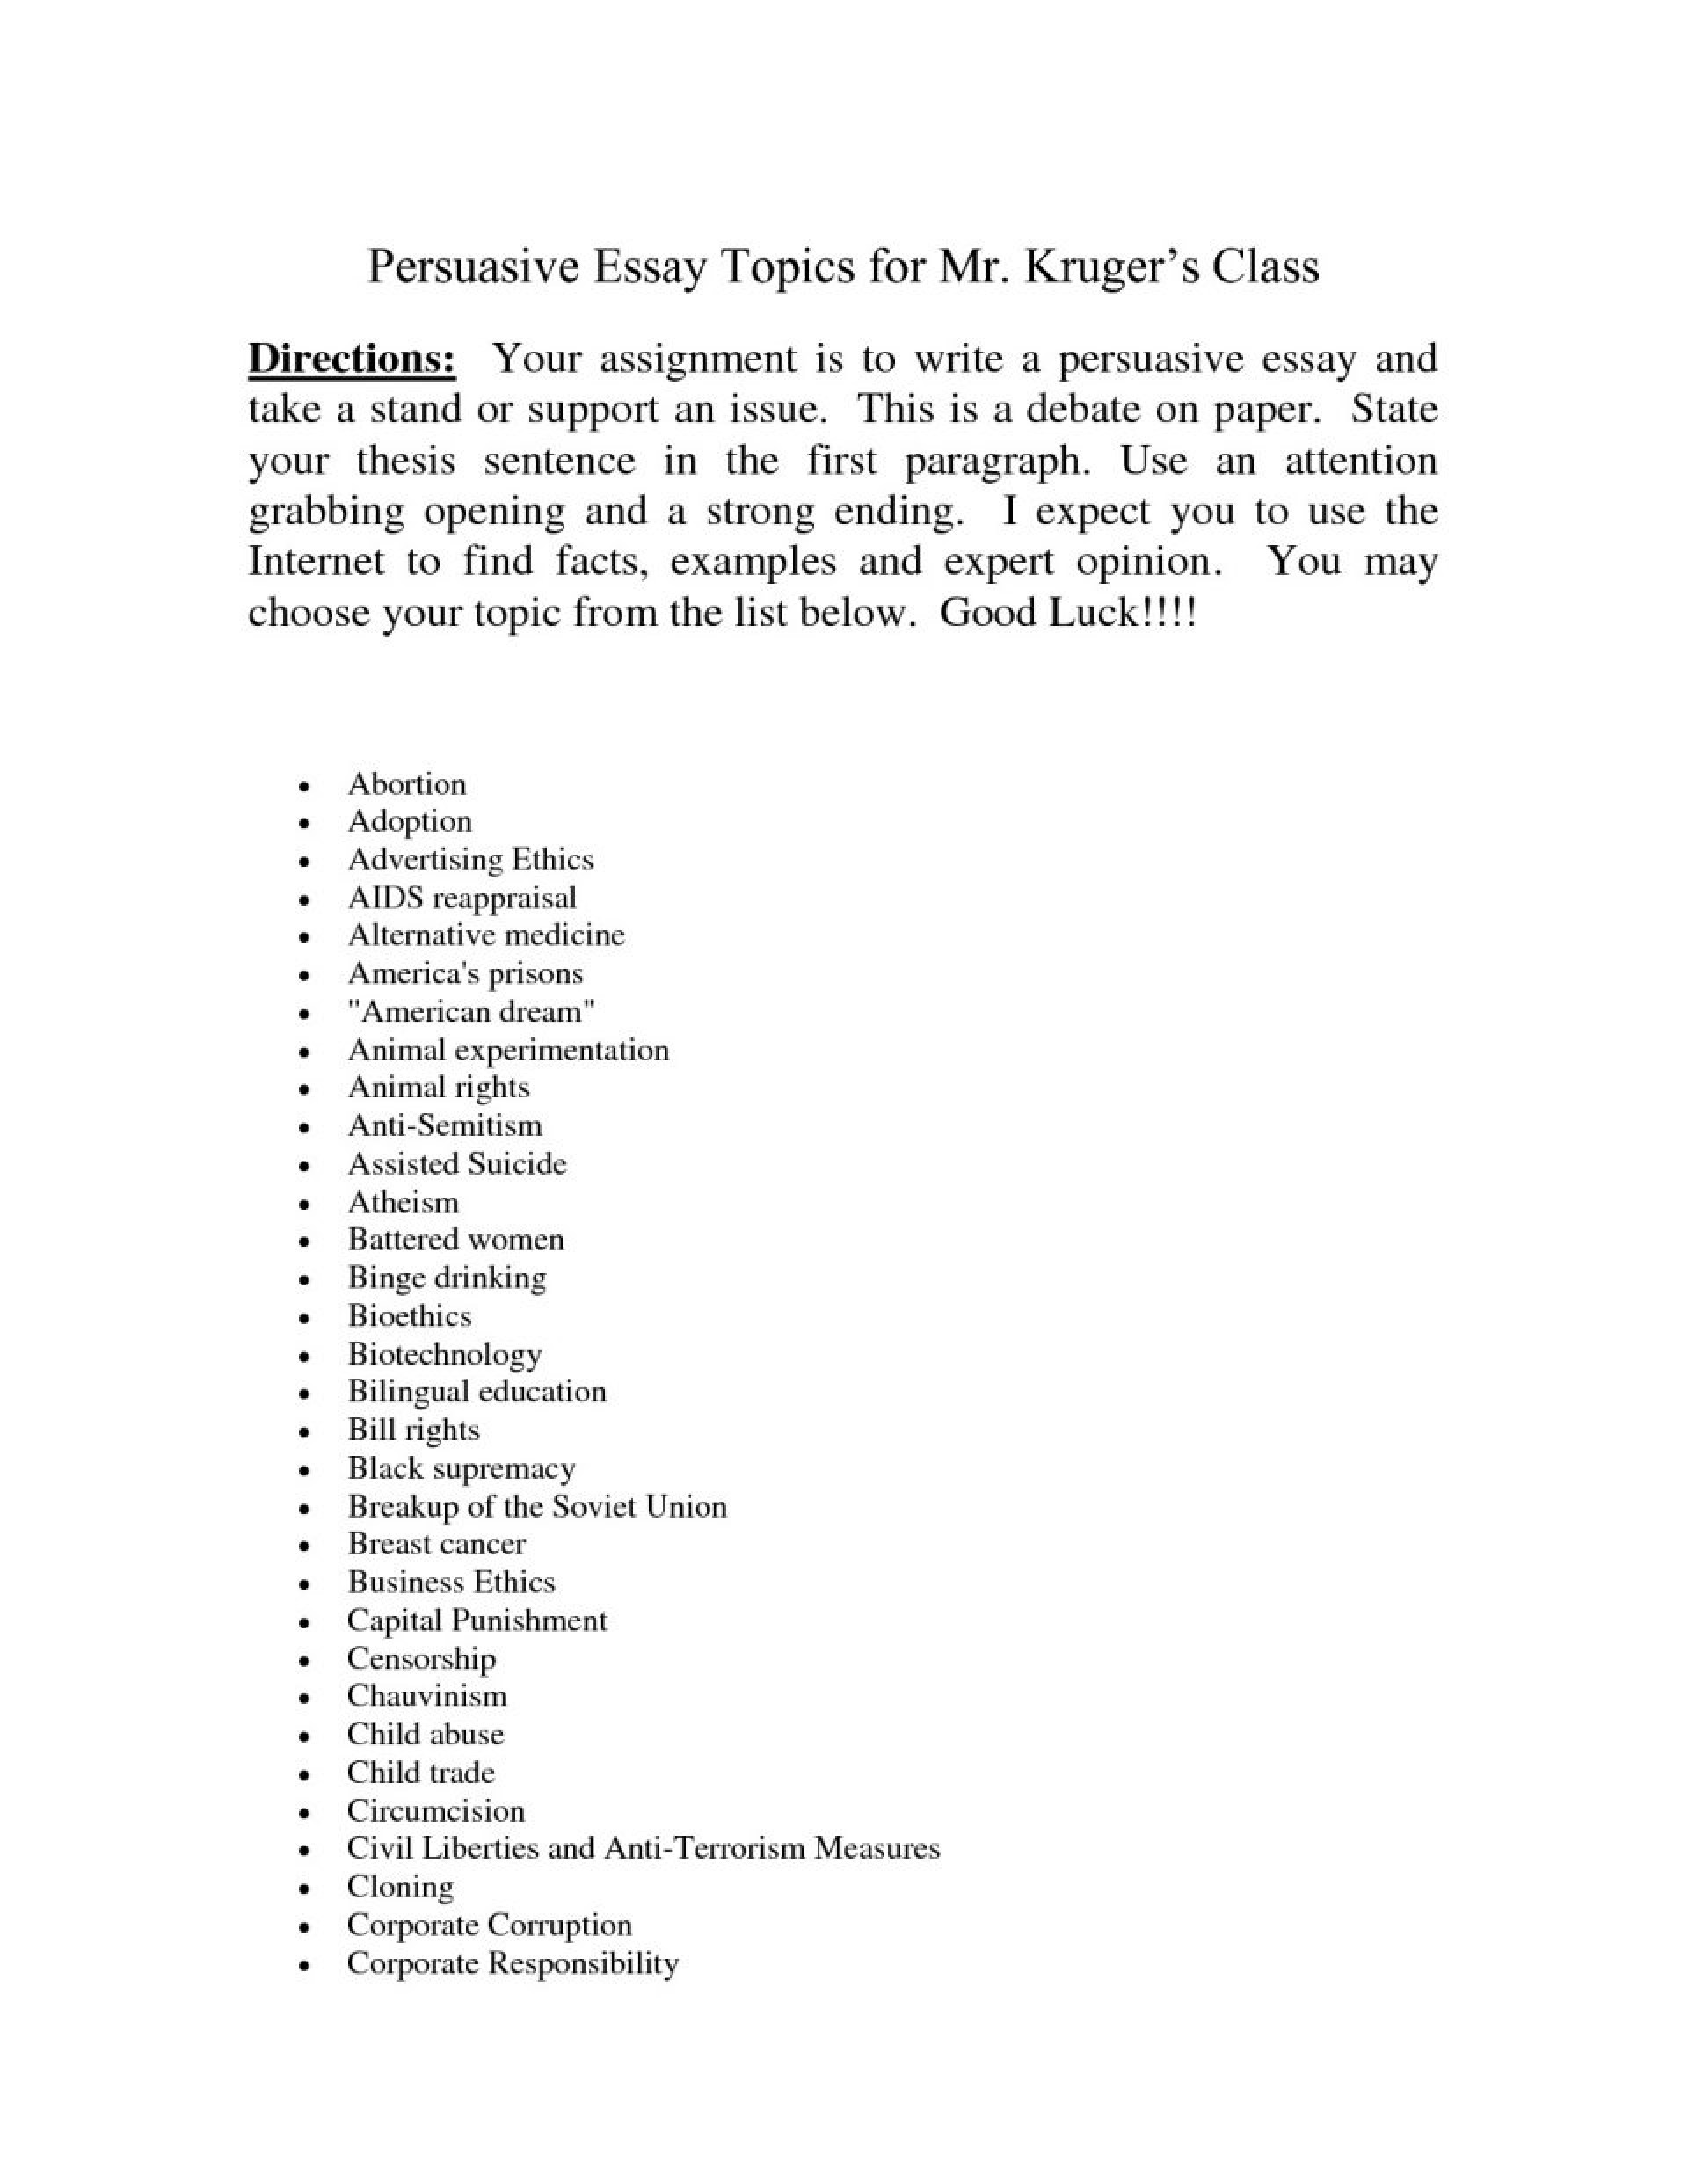 007 Topics To Write About In Research Paper Topic For Essay Barca Fontanacountryinn Within Good Persuasive Narrative Abo Easy Personal Shocking A Health On 1920